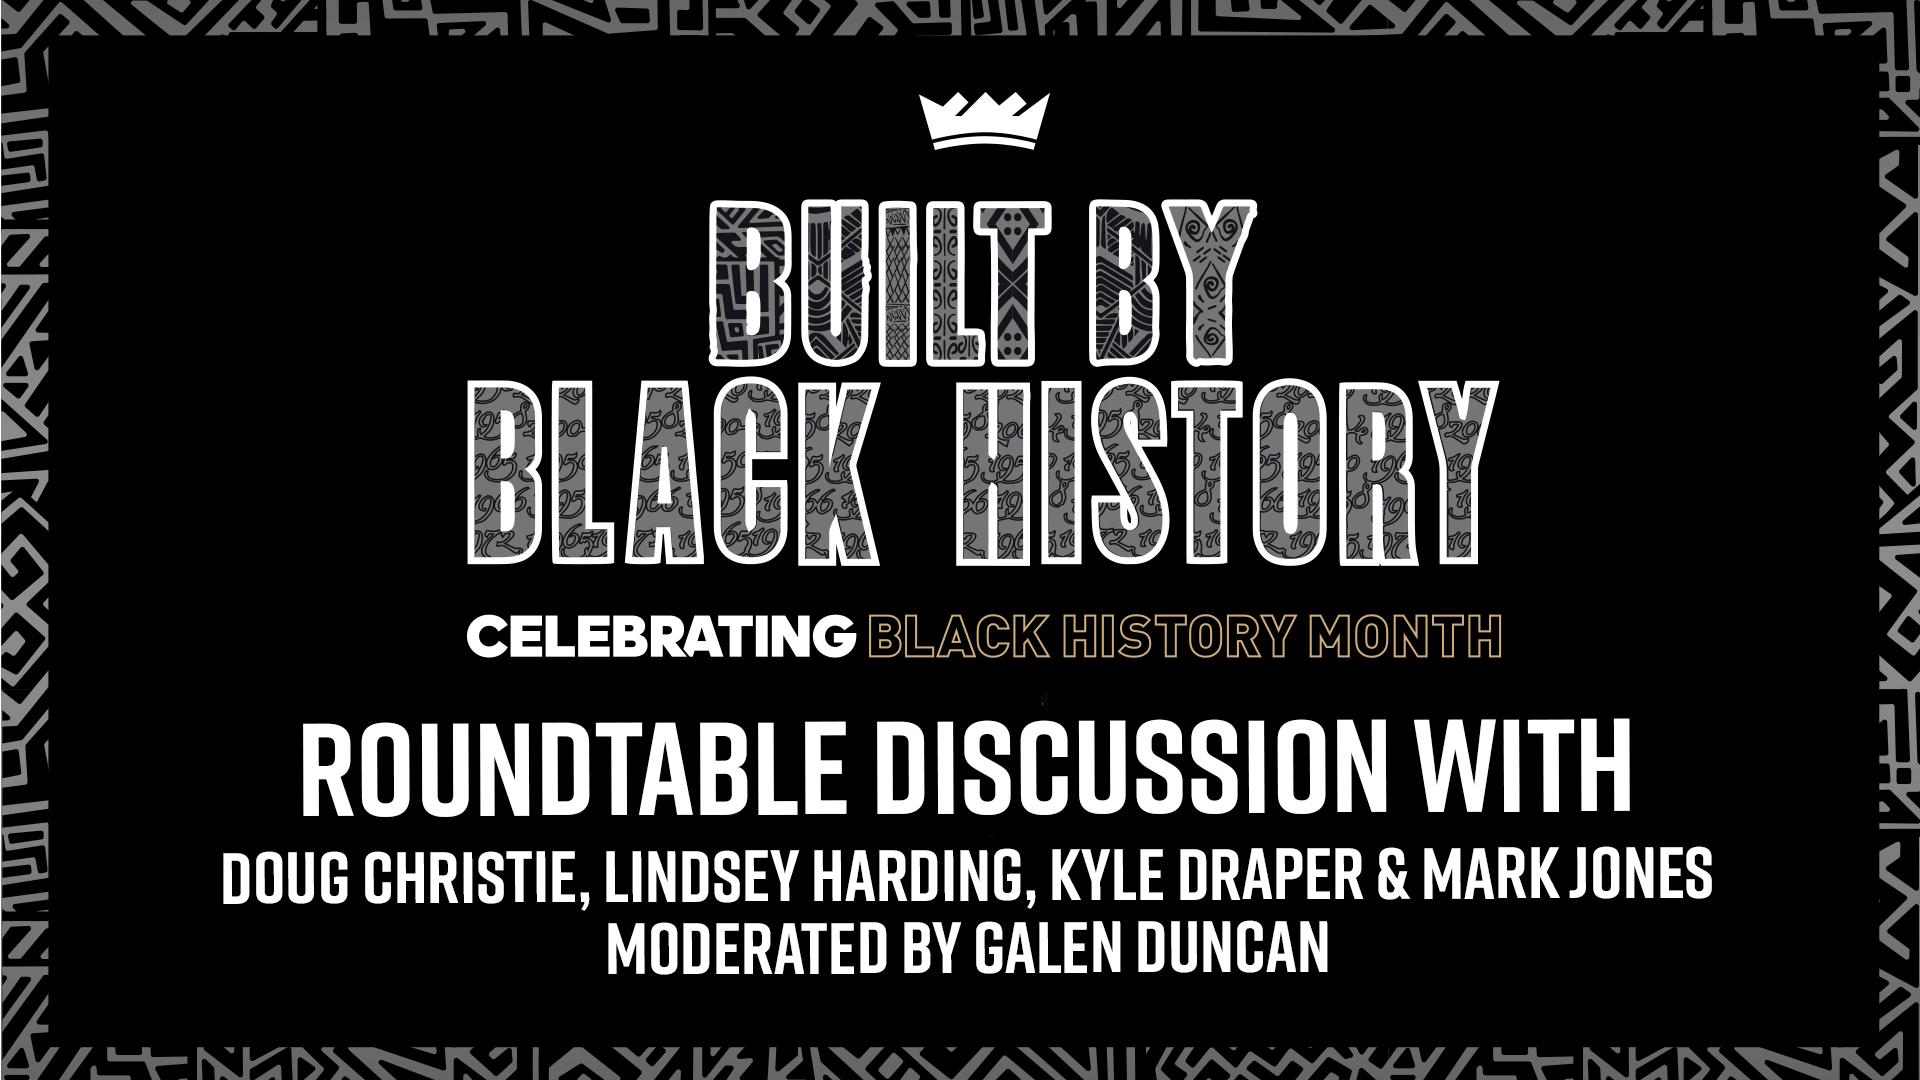 Black History Month Roundtable Discussion: Part 3